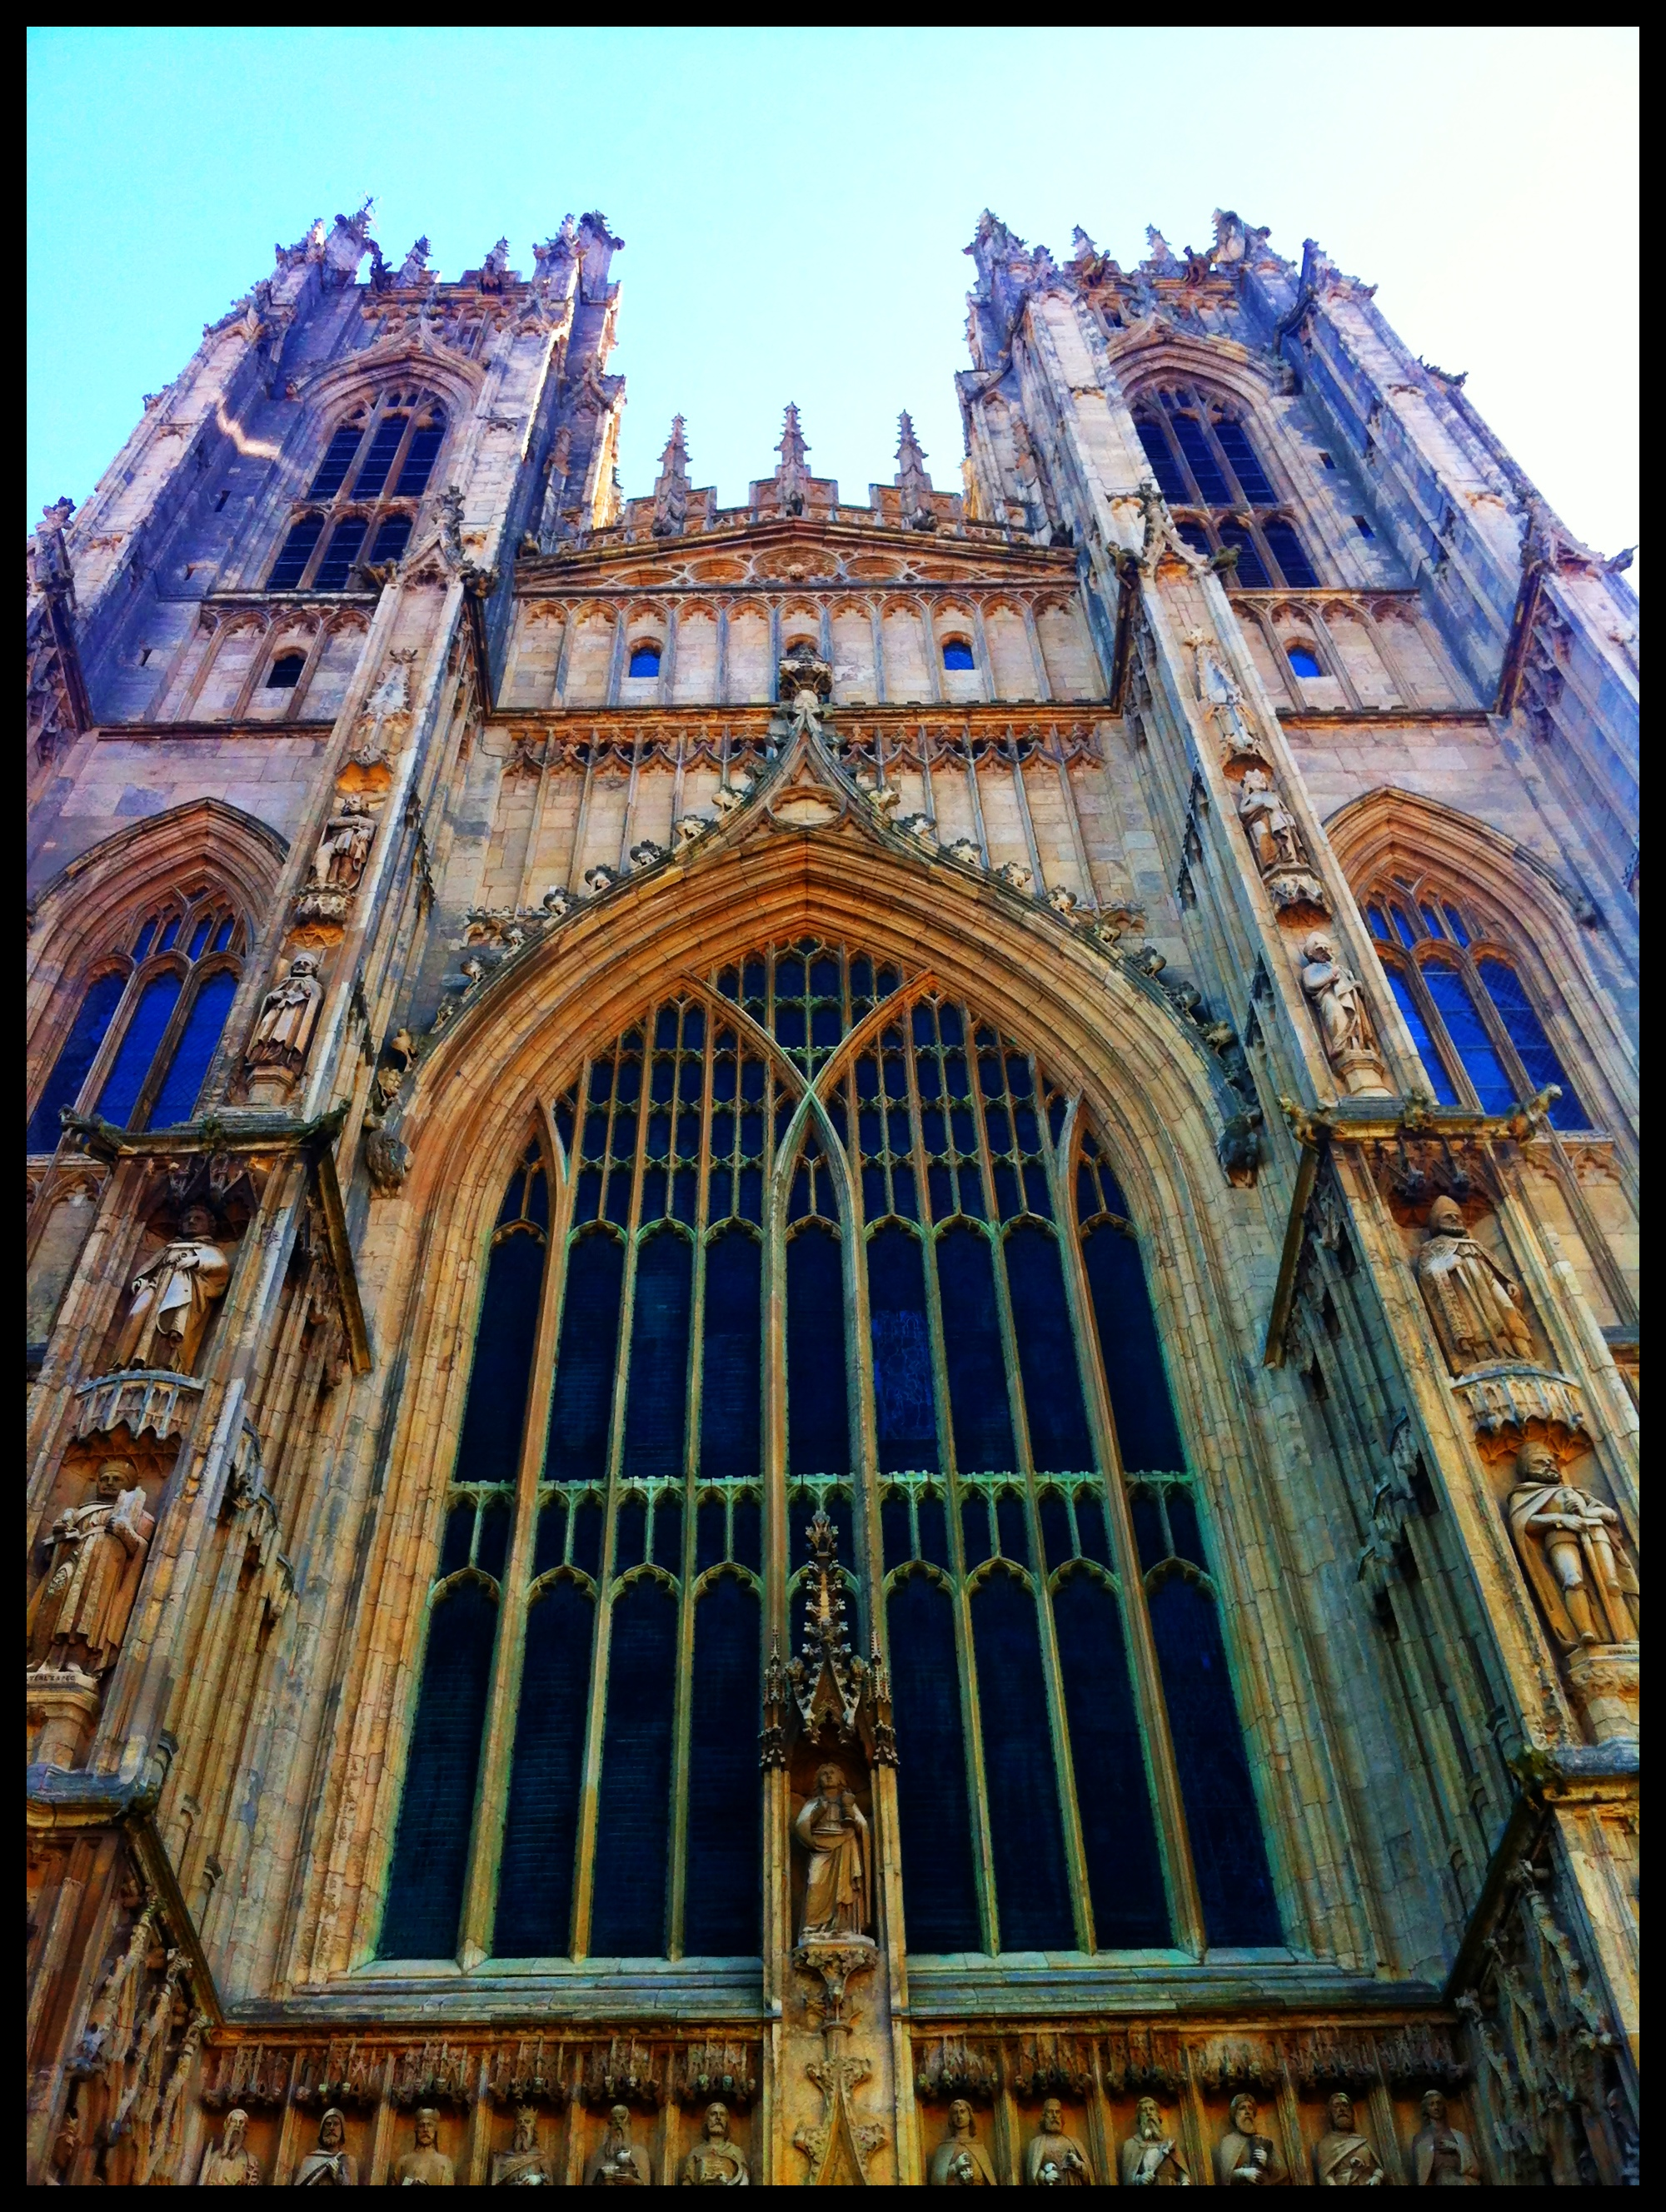 Beverley Minster through my eyes.